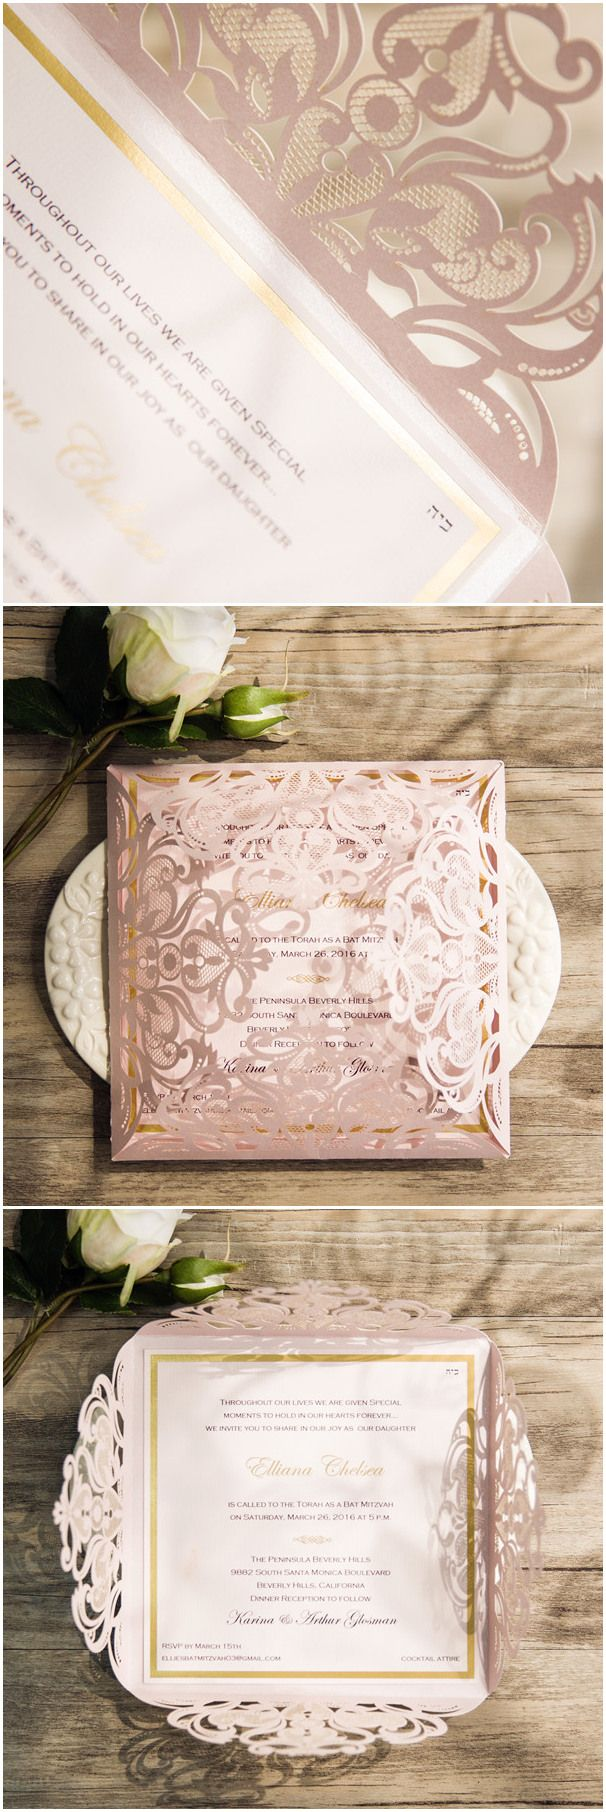 elegant wedding invites coupon codes%0A pink and gold wedding colors inspired laser cut elegant wedding invitations  with foil stamped design ewws